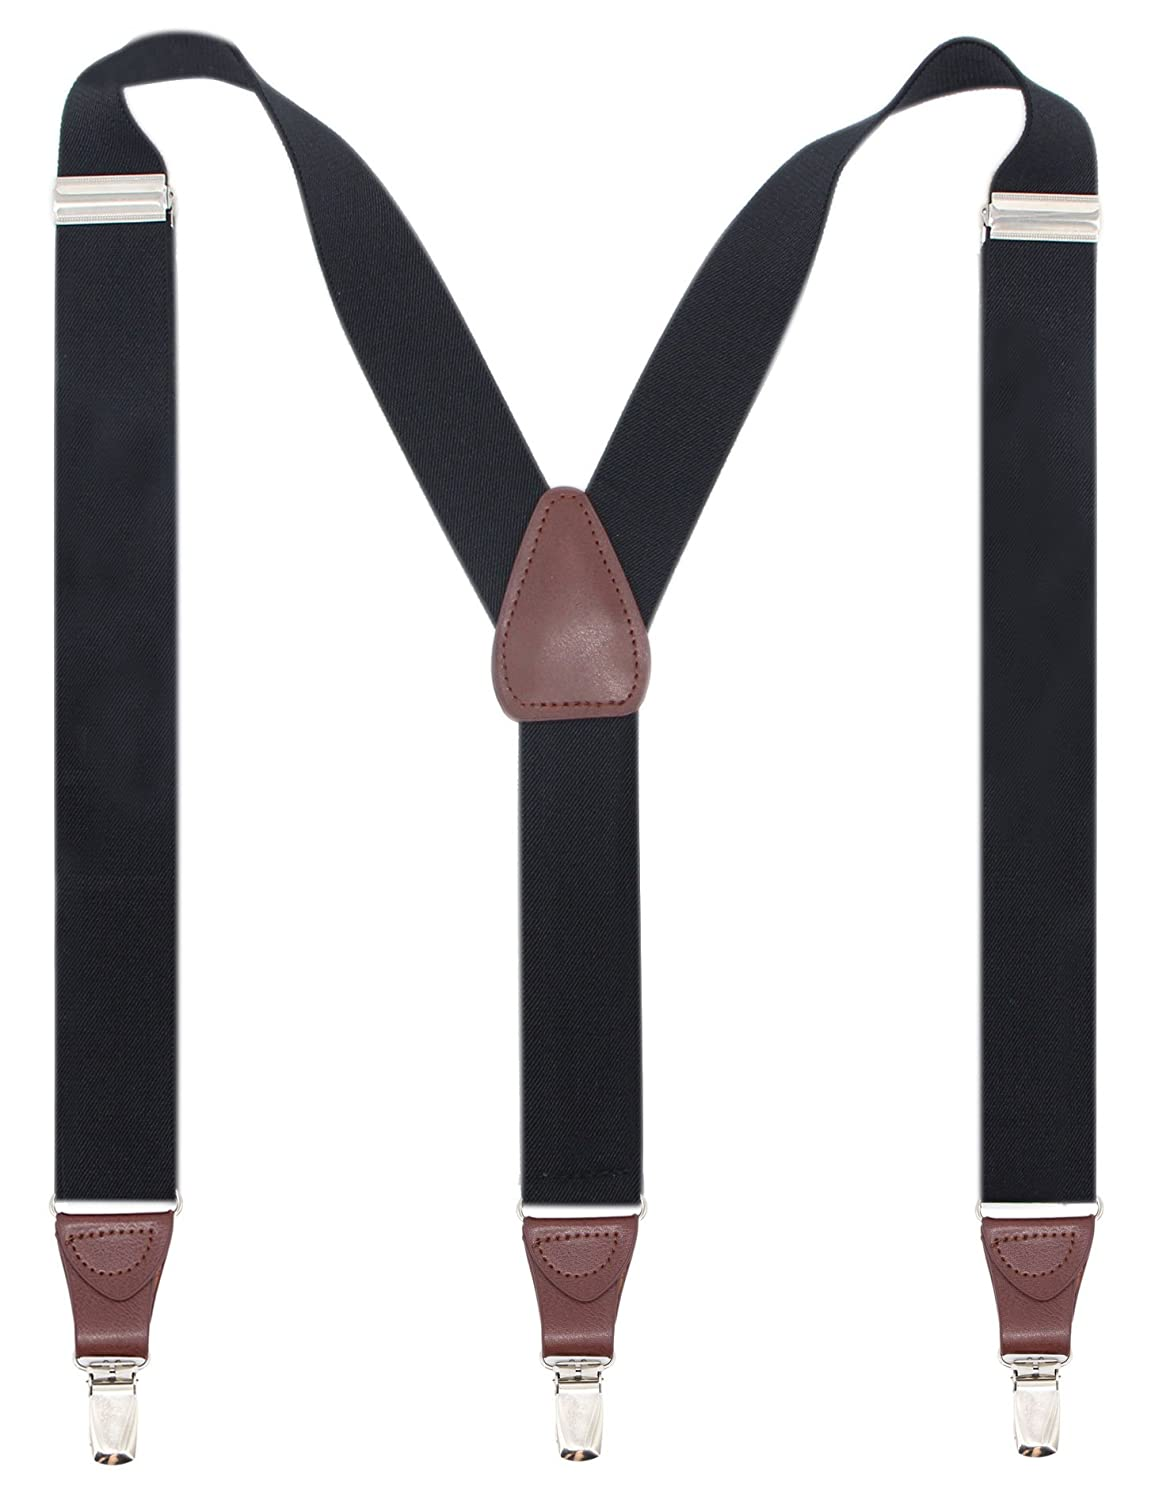 1741356c5b2 COMFY FIT ALL DAY LONG – ADJUST TO YOUR NEEDS  These Y-shaped men s  suspenders are made of high quality fabric and PU leather so as to stand  the test of ...